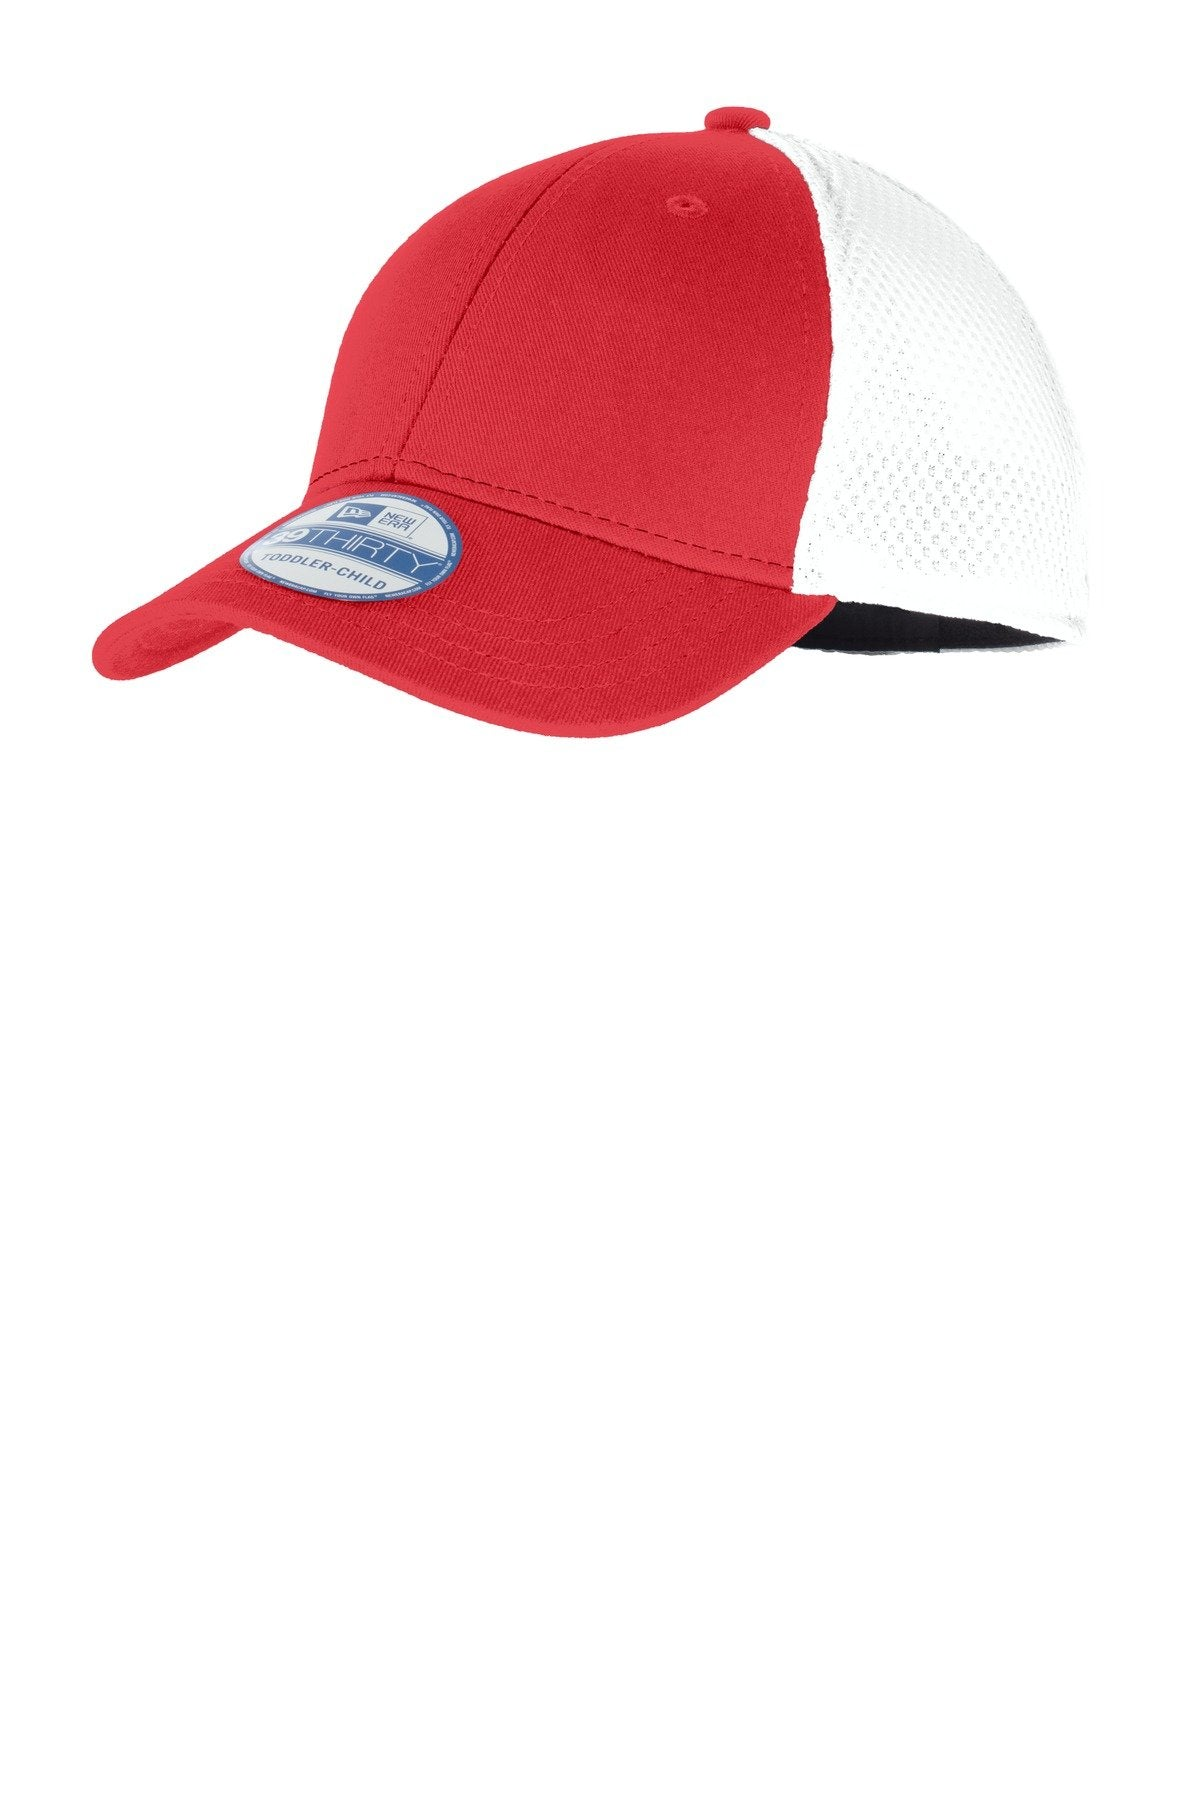 Scarlet Red/White - New Era NE302